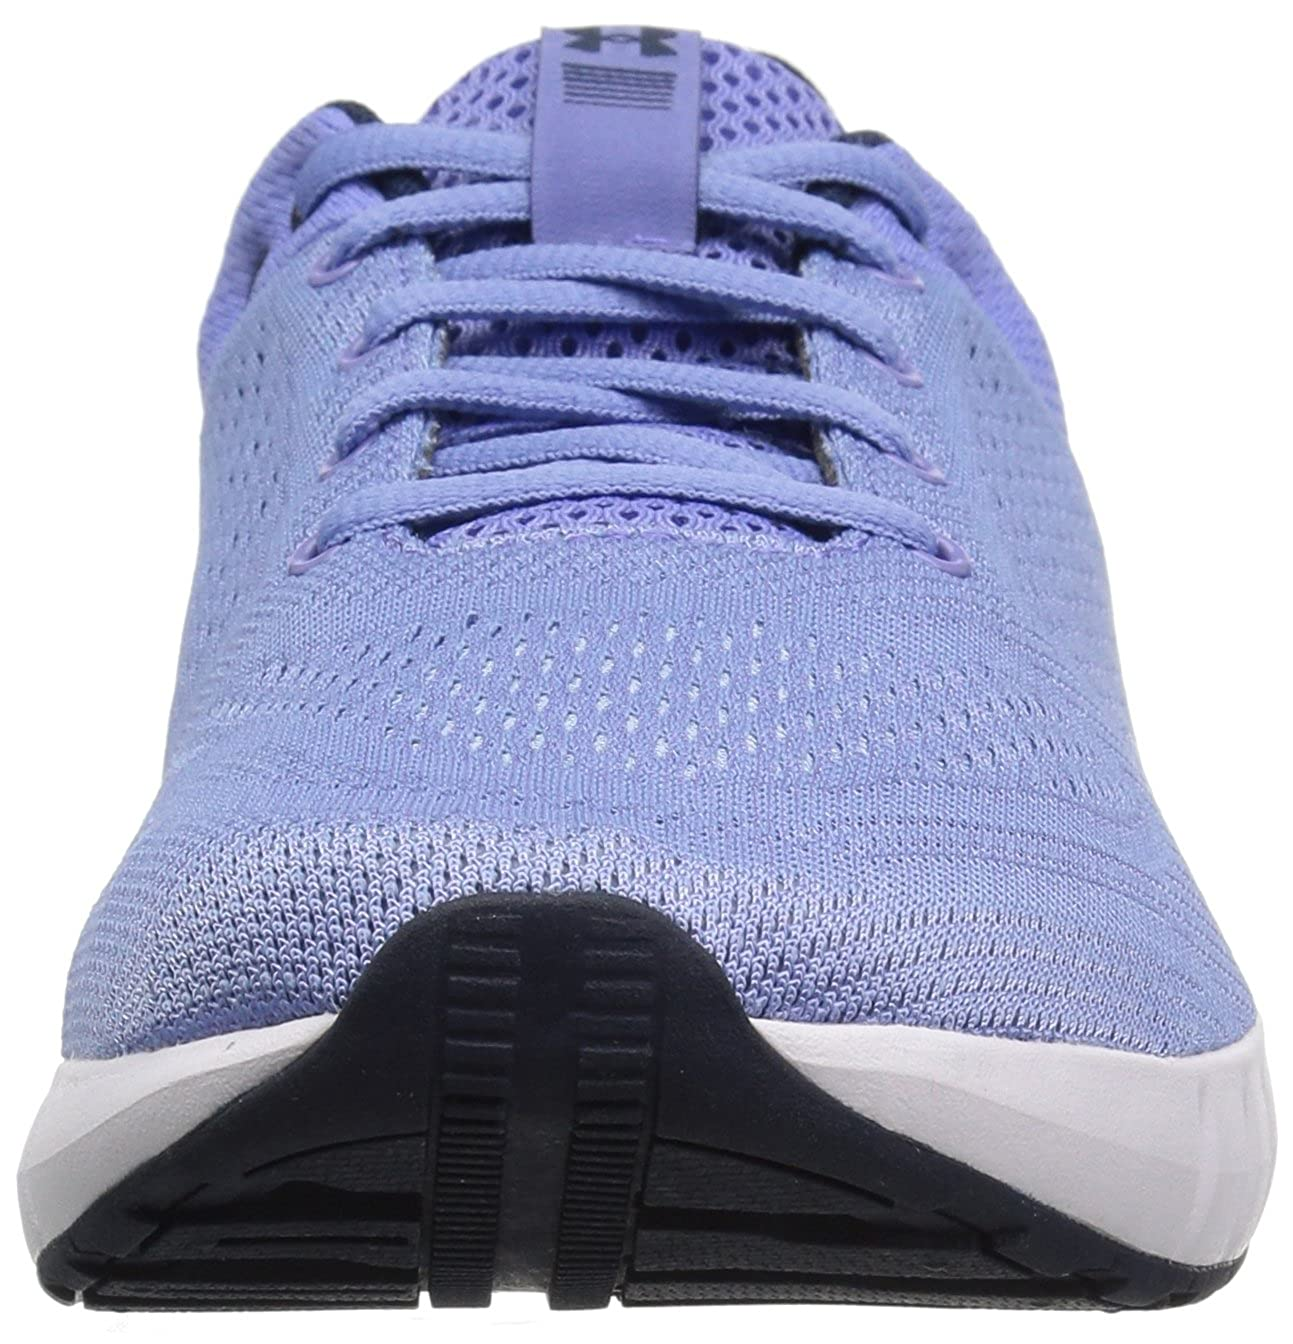 Under Armour Micro G Pursuit Women s Running Shoes